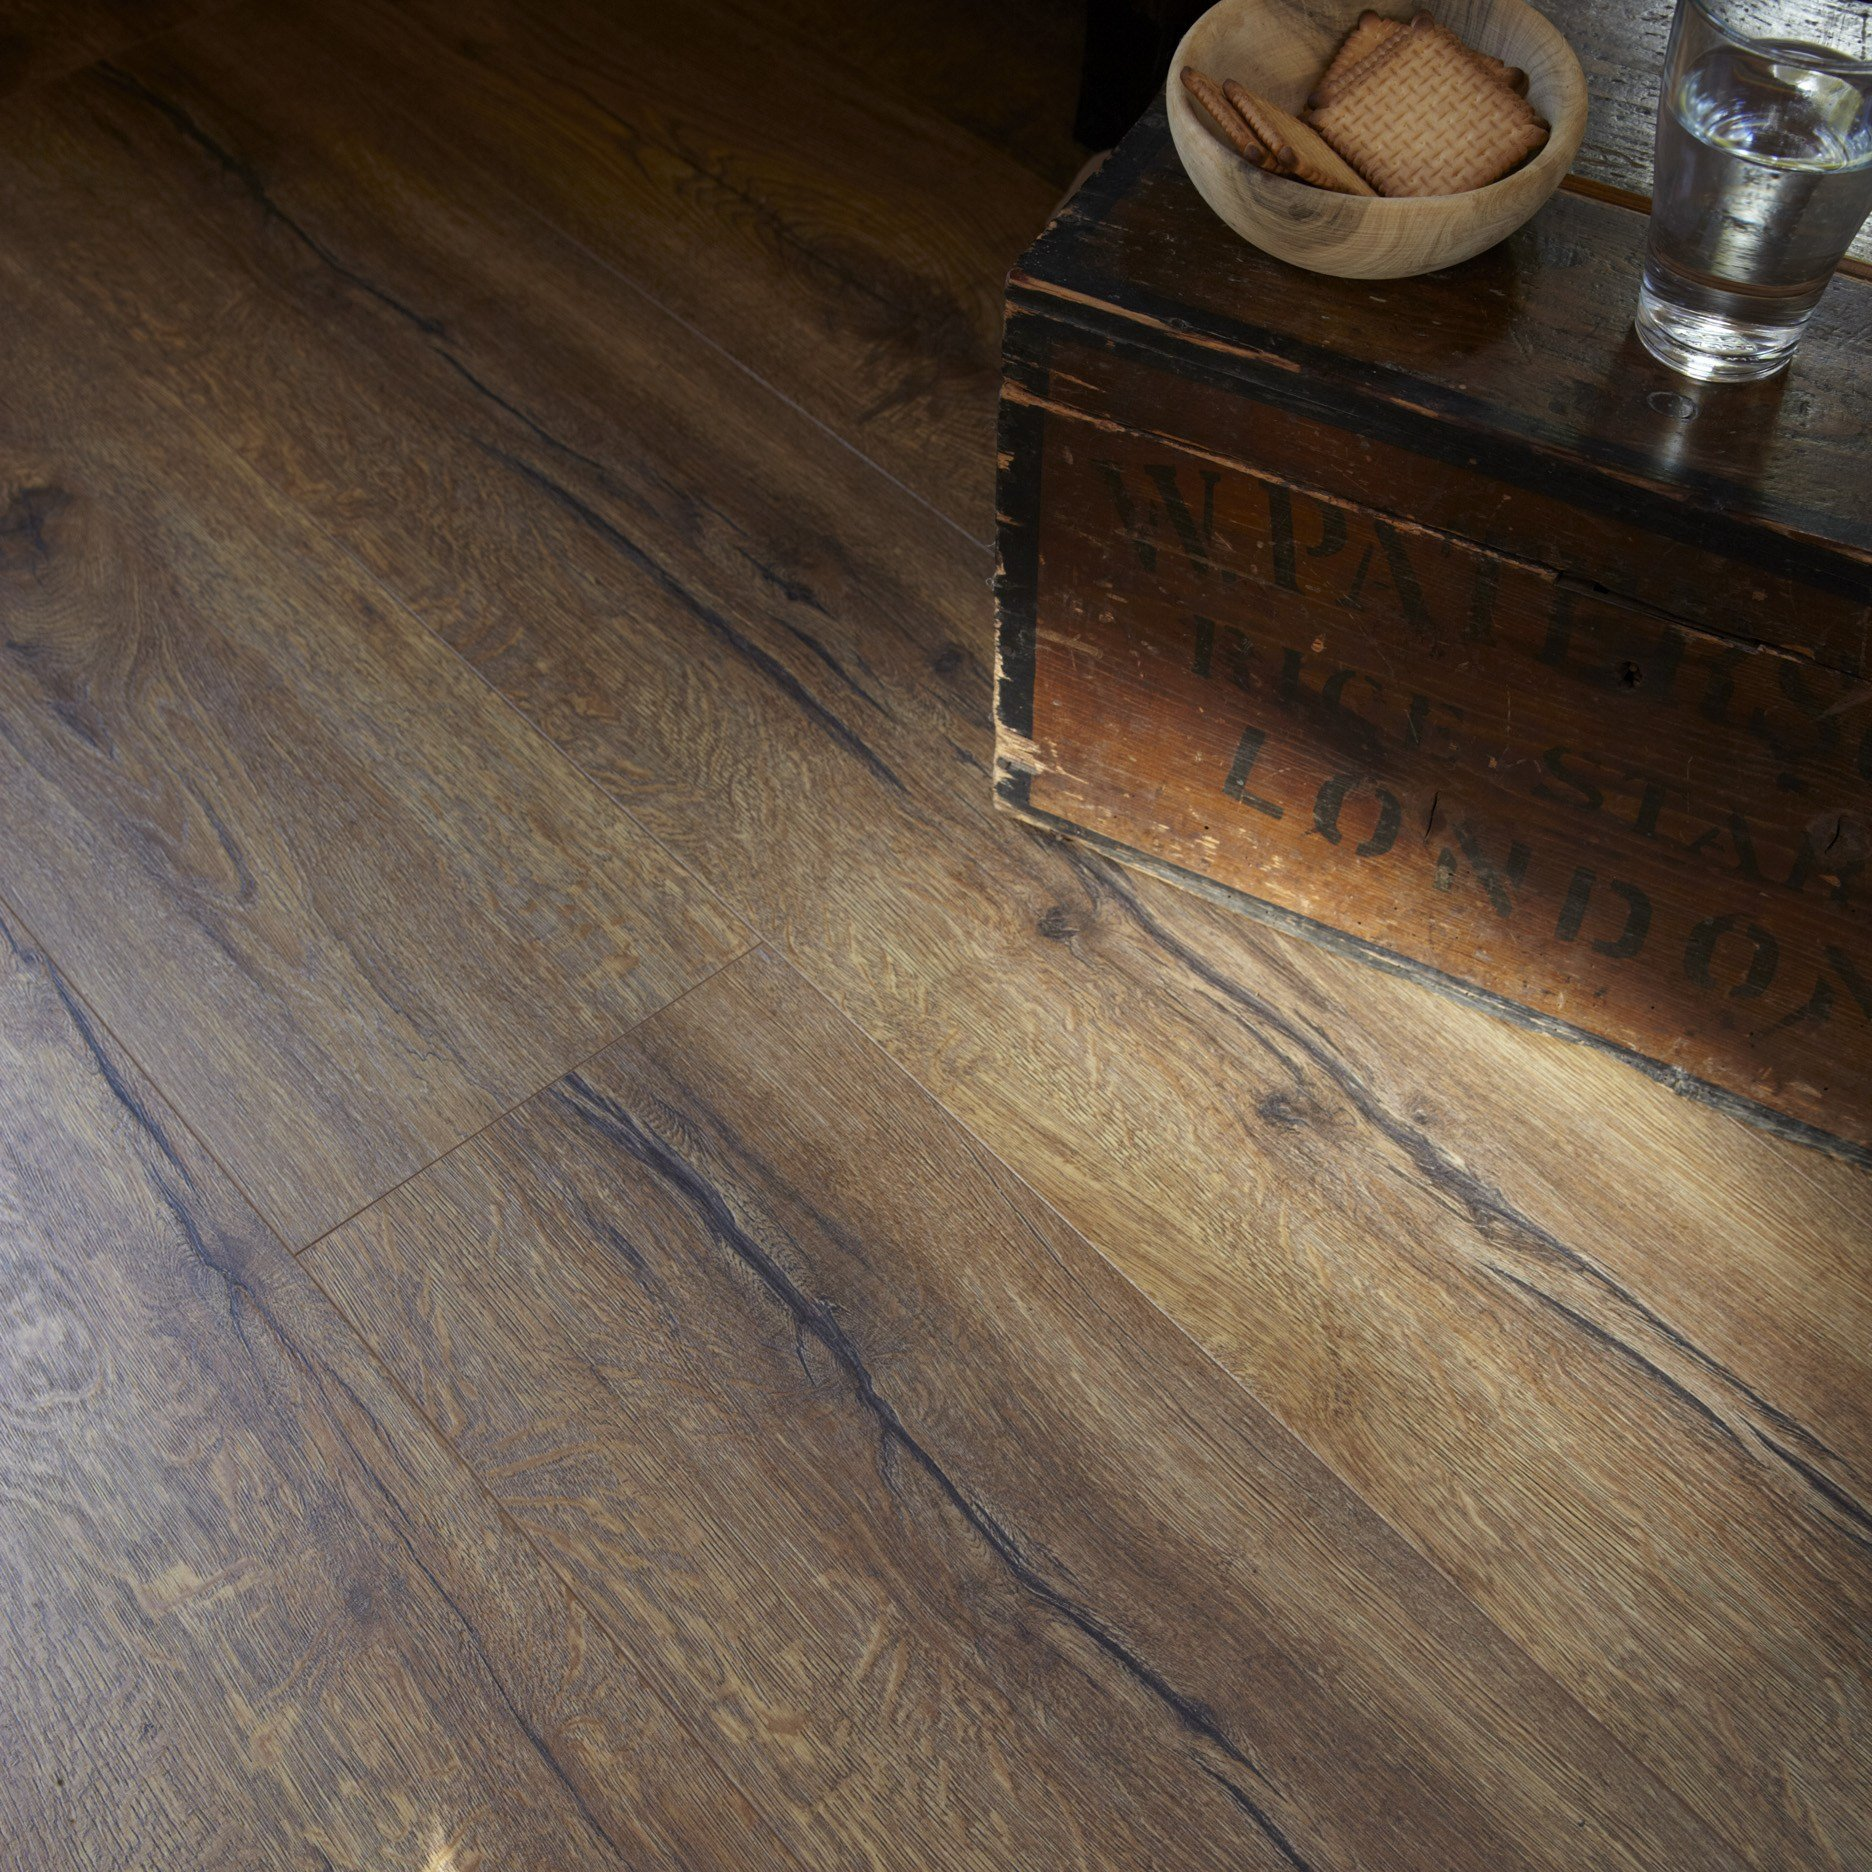 Laminate flooring long boards by tarkett for Tarkett laminate flooring